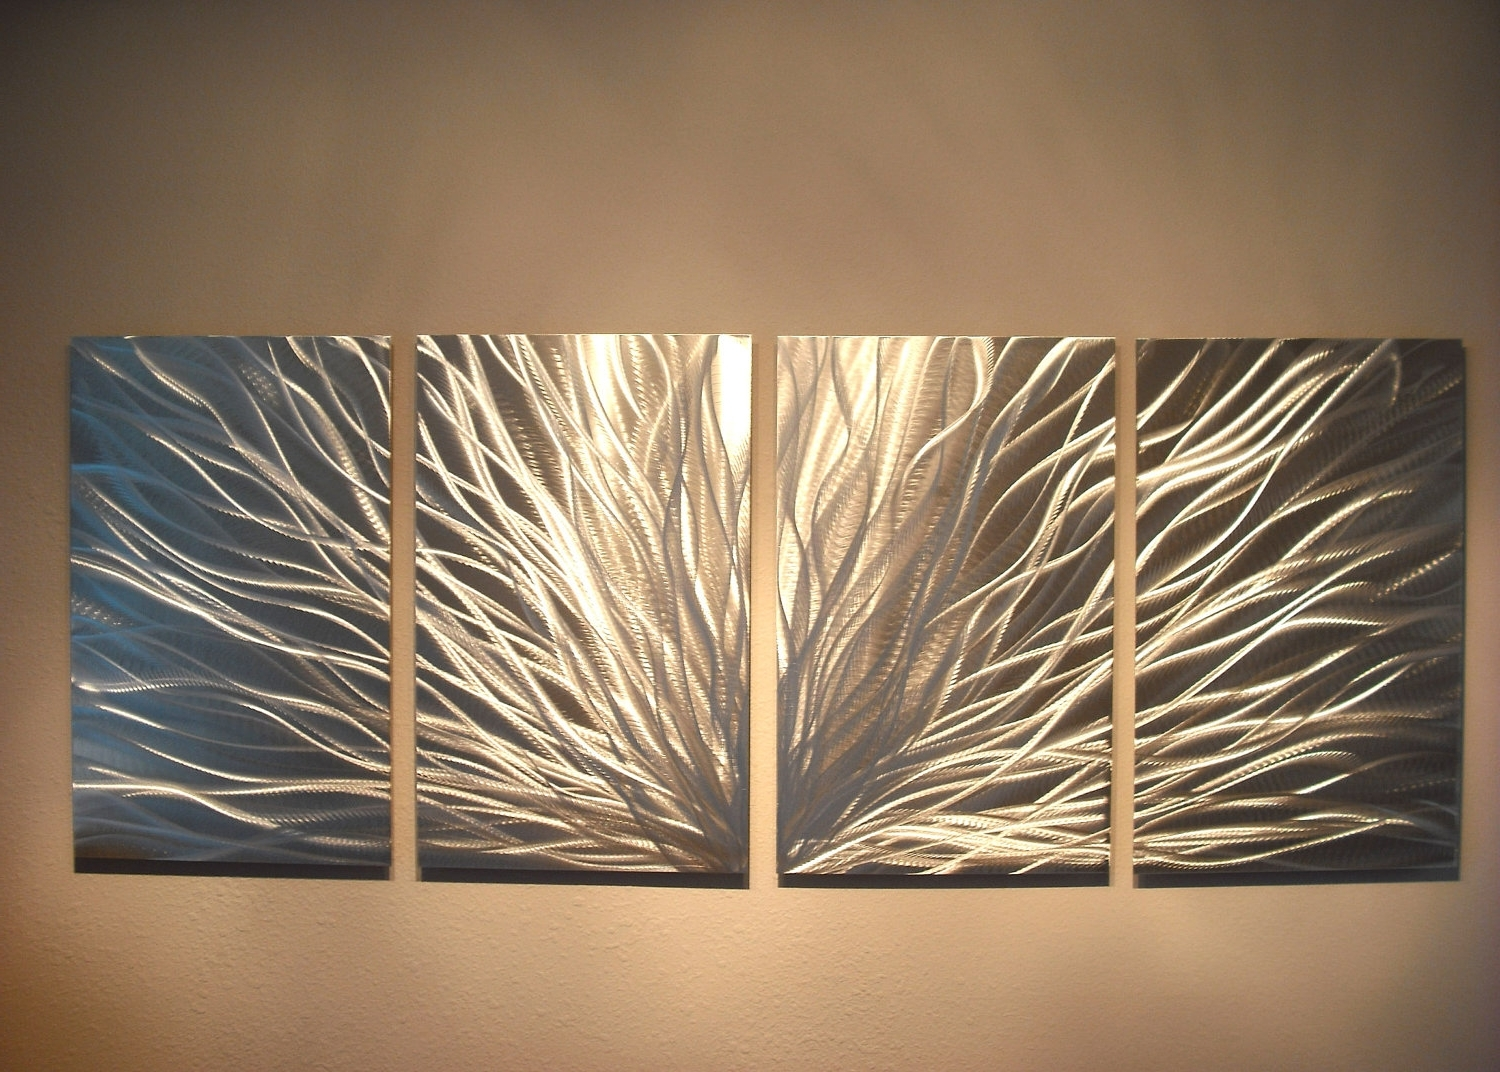 Most Popular Radiance – Abstract Metal Wall Art Contemporary Modern Decor Intended For Decorative Wall Art (View 12 of 20)